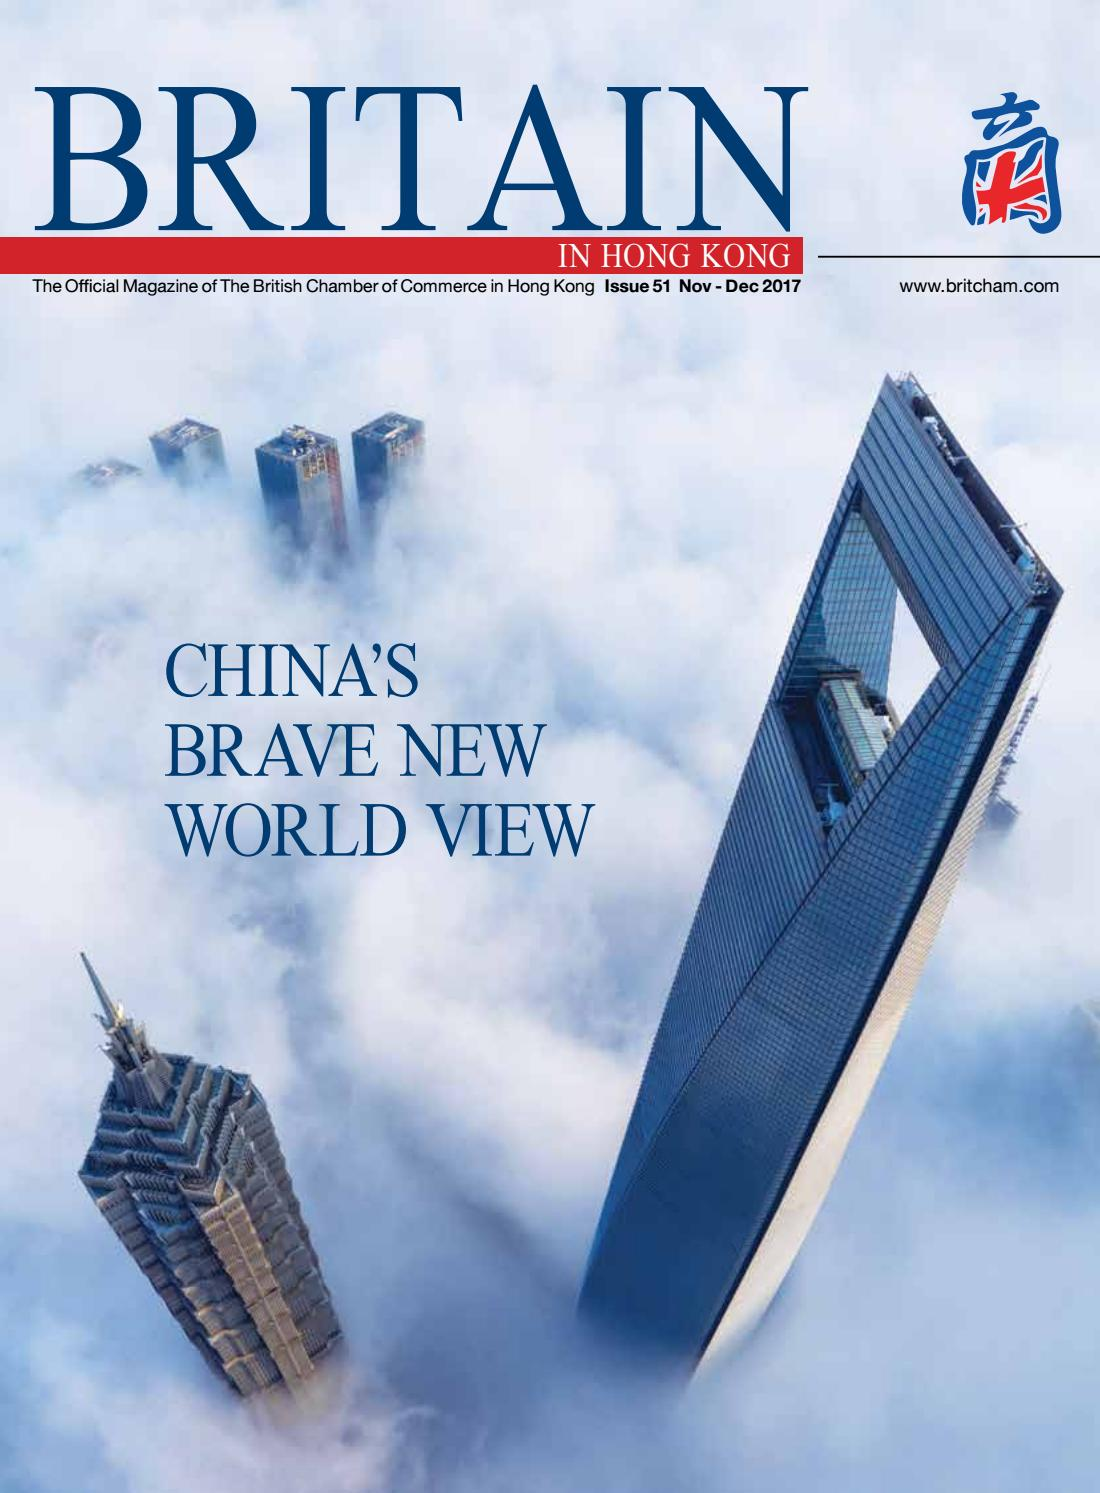 Britain in hong kong nov dec 2017 by the british chamber of commerce britain in hong kong nov dec 2017 by the british chamber of commerce issuu malvernweather Image collections